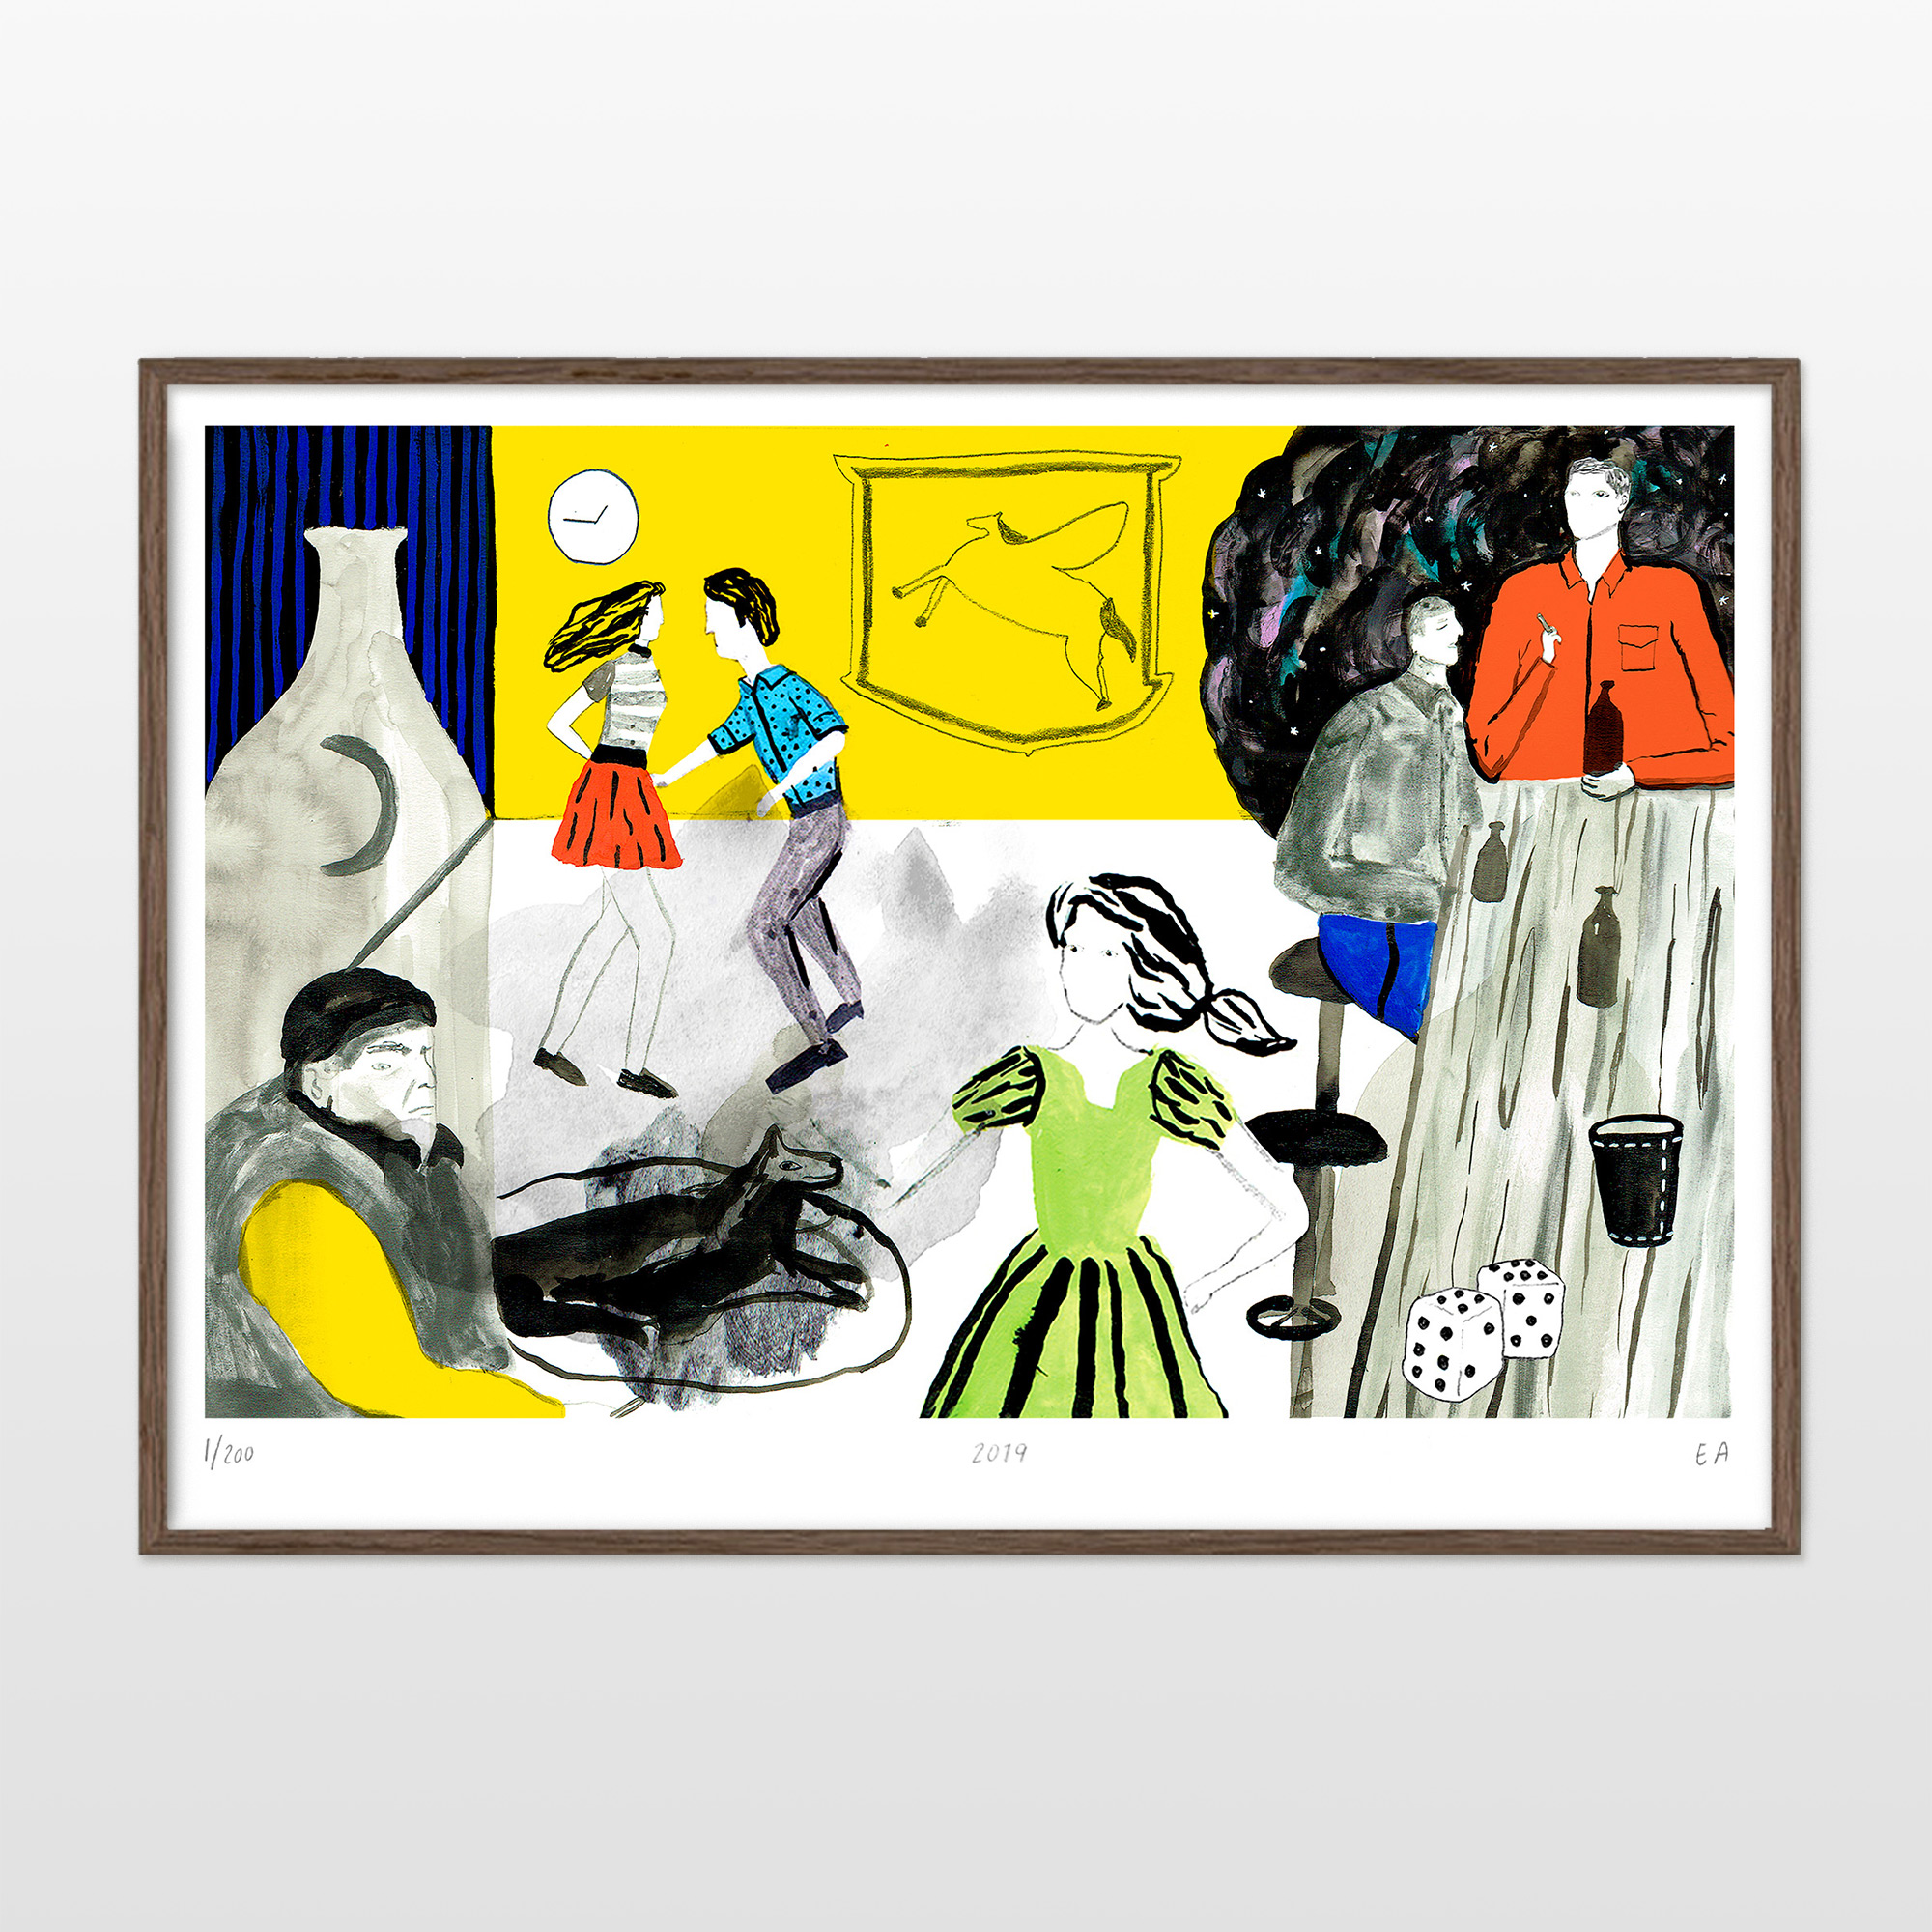 posters-prints, giclee-print, colorful, illustrative, pop, everyday life, movement, people, black, green, grey, red, ink, paper, contemporary-art, dance, danish, design, drinks, female, interior, interior-design, modern, modern-art, nordic, party, scandinavien, Buy original high quality art. Paintings, drawings, limited edition prints & posters by talented artists.